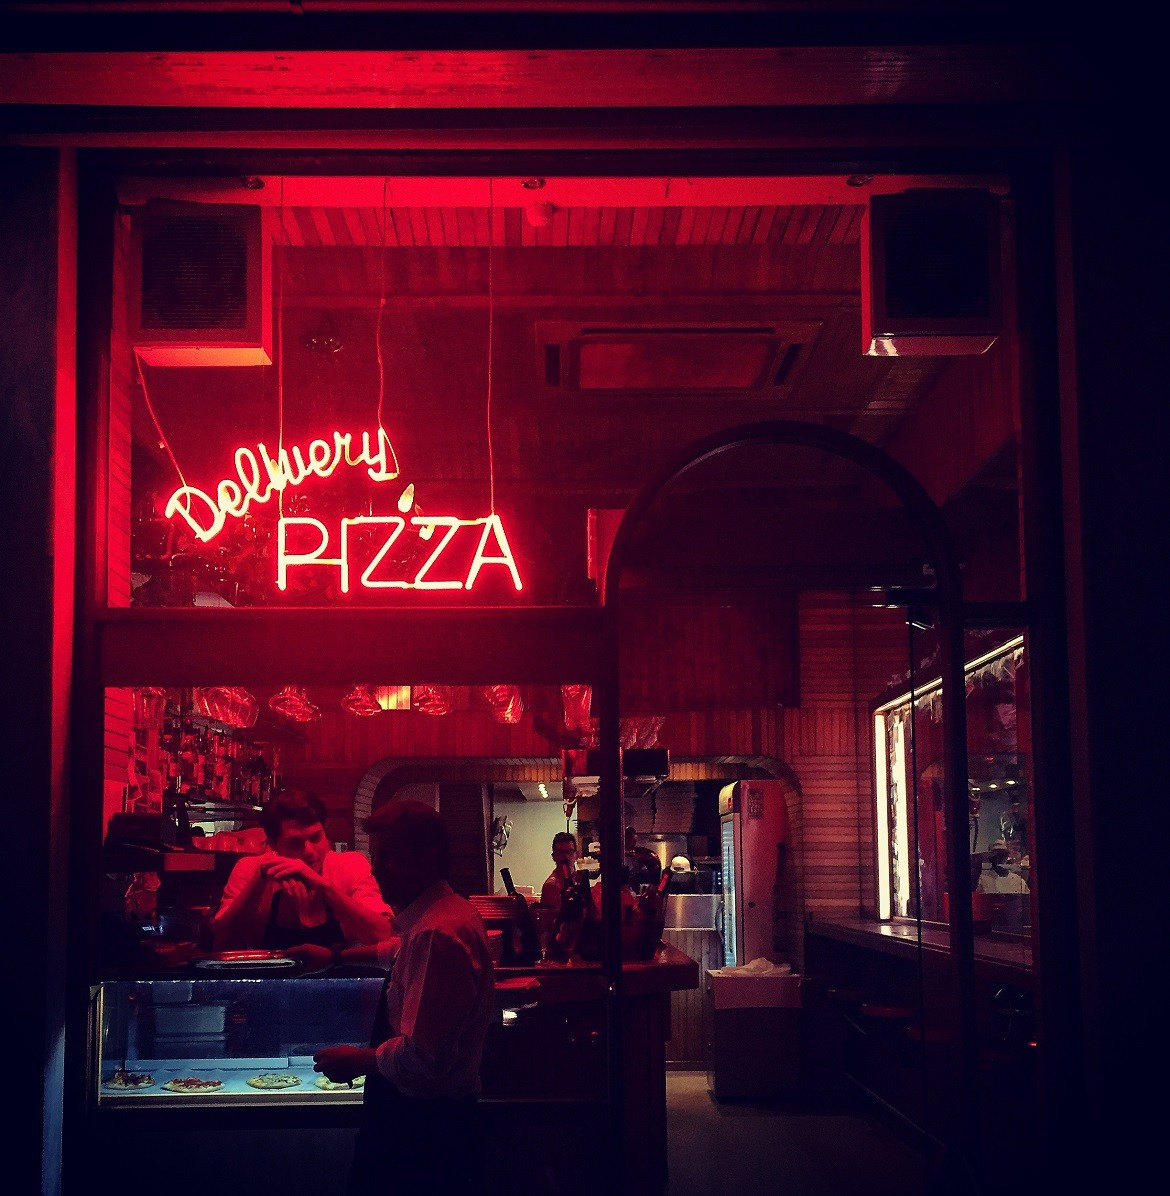 Flower at Mavili sq. delivers New-York style pizza (complete with lots of style).